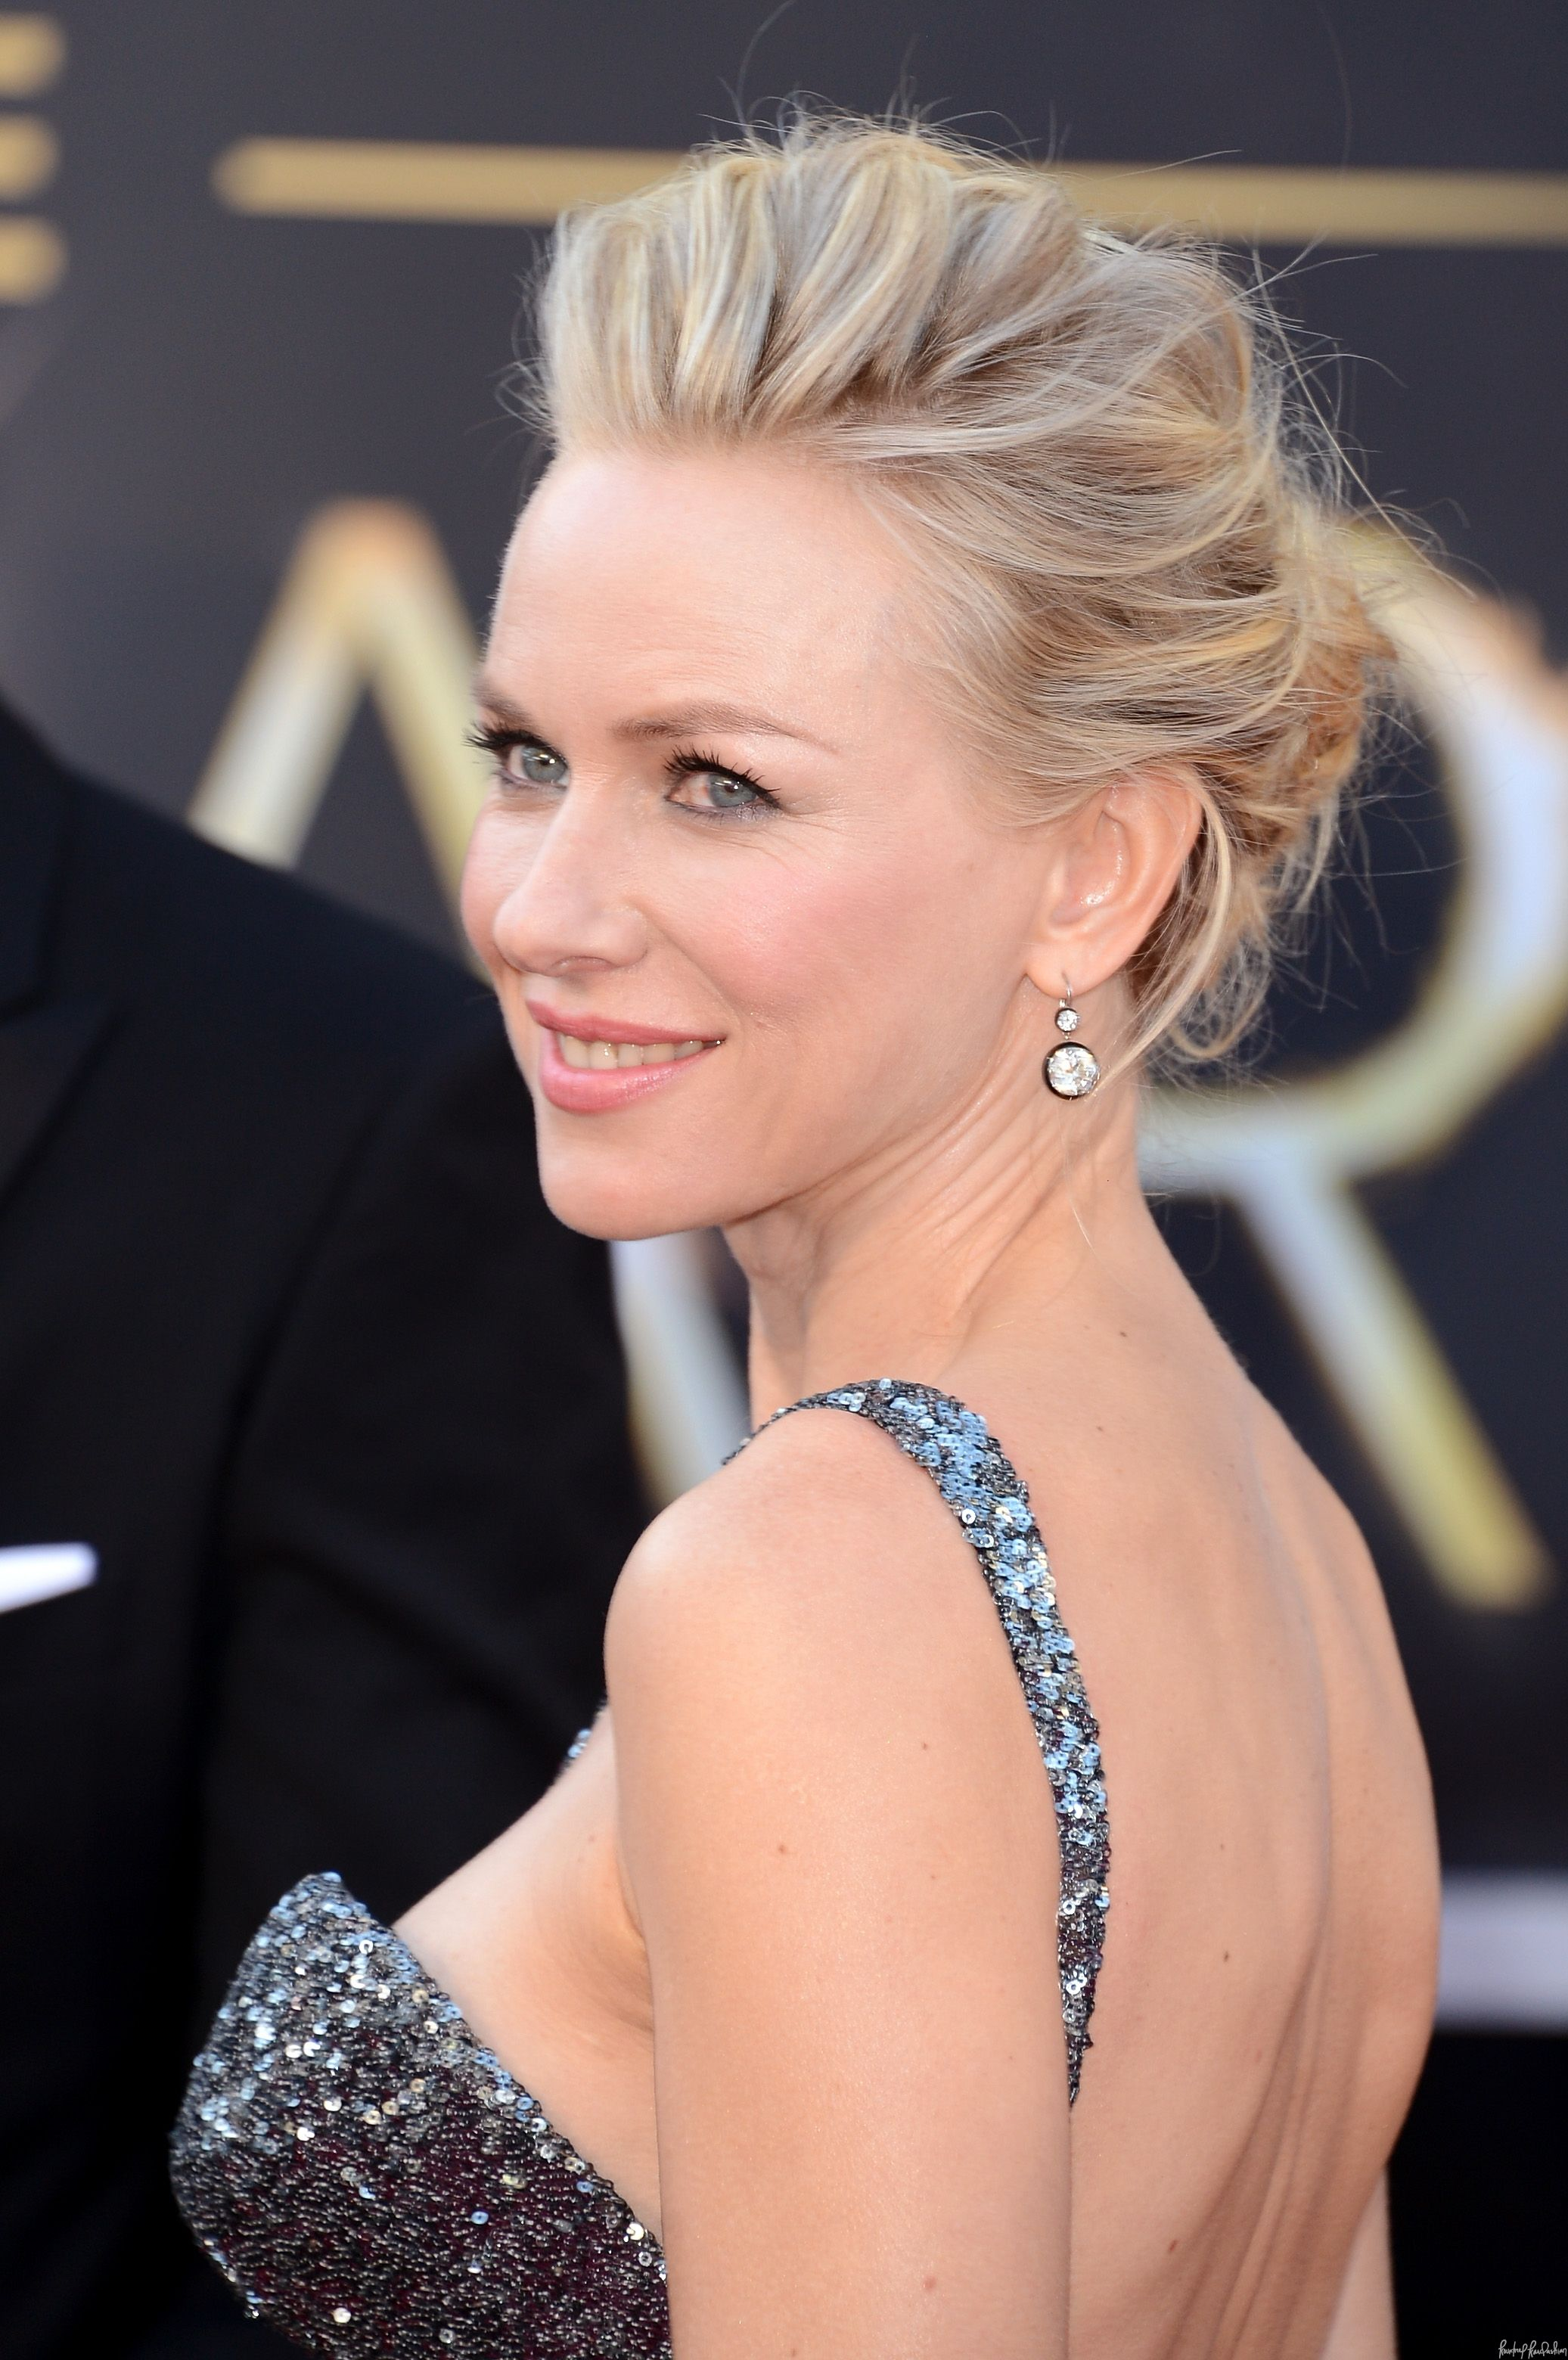 2019 year for women- Get watts naomi perfectly messy oscars updo